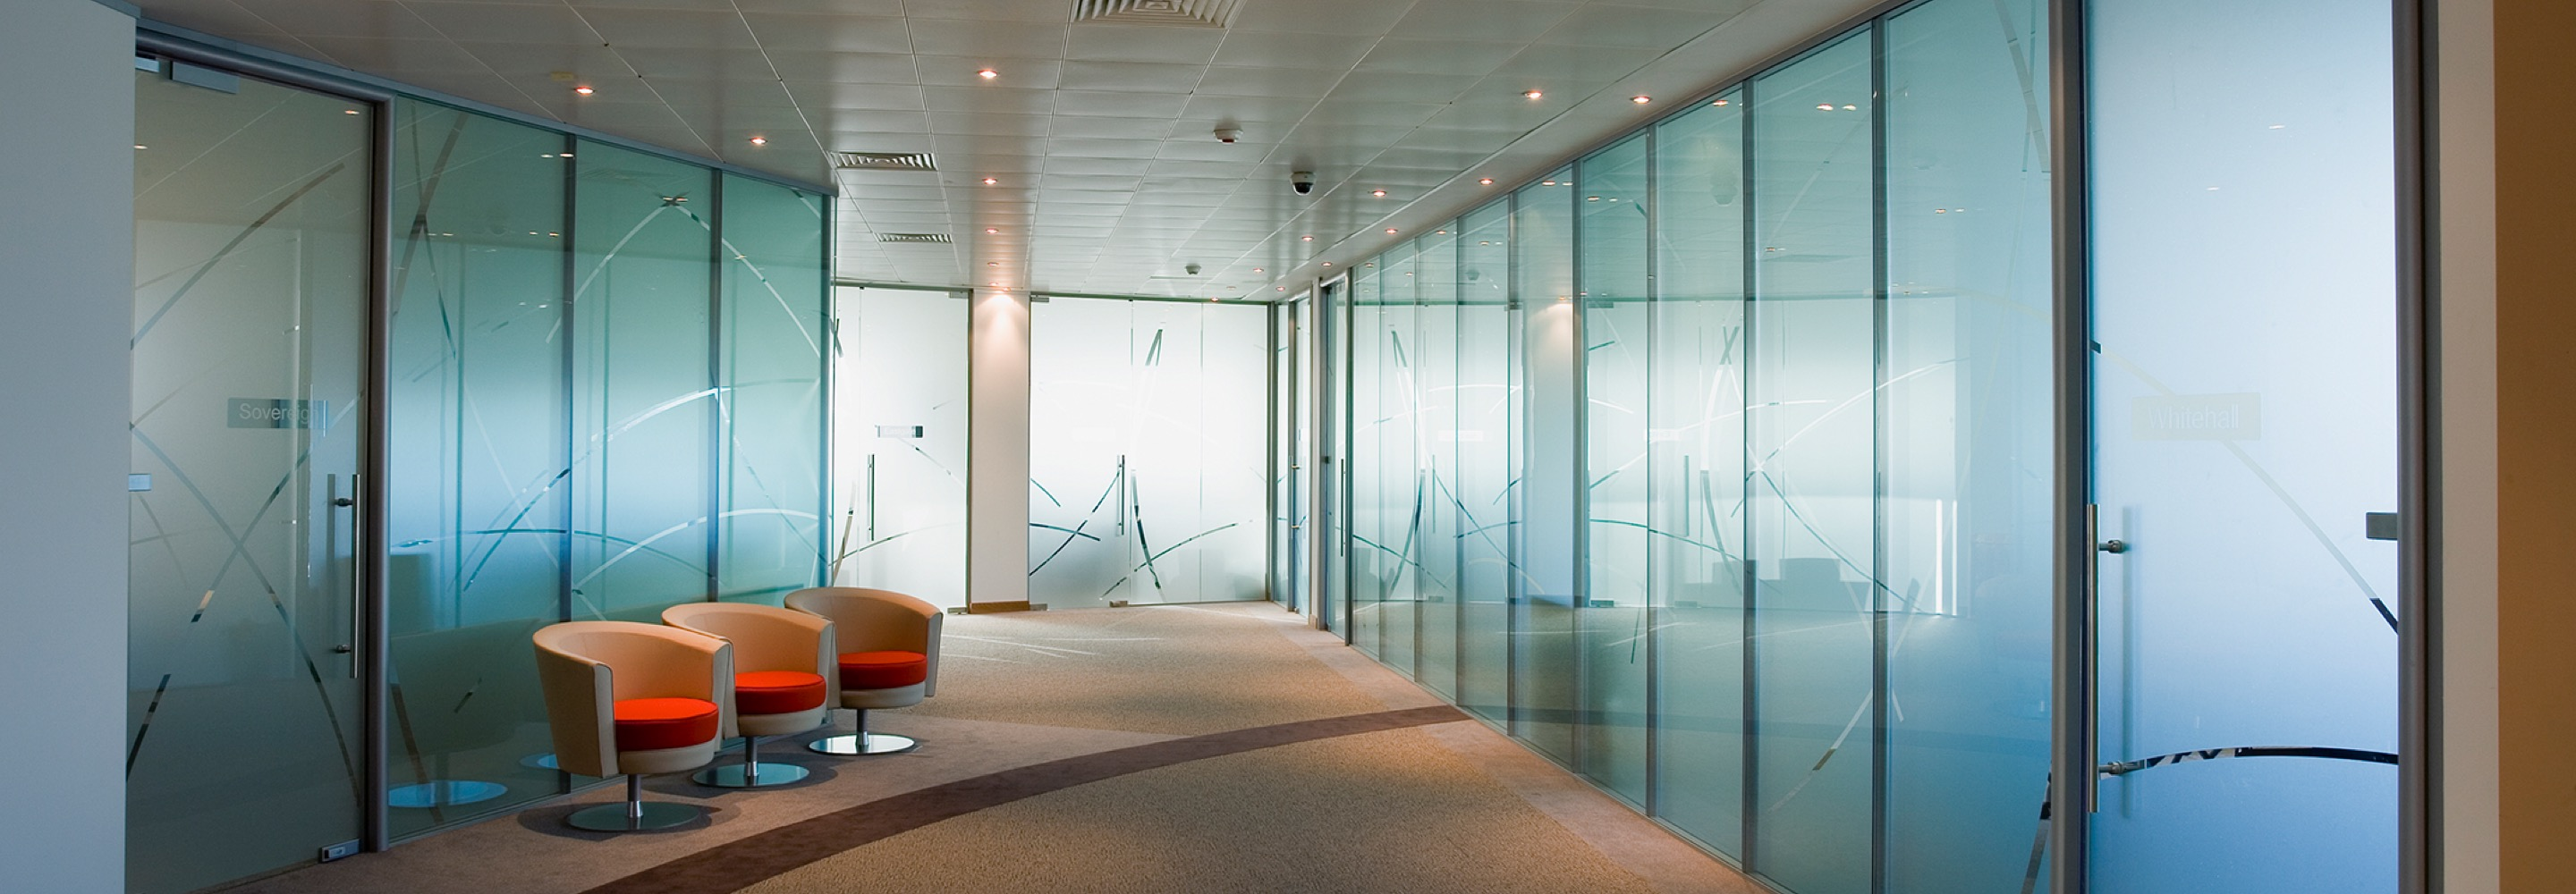 Corporate Interiors - glass partitions in modern office corridor